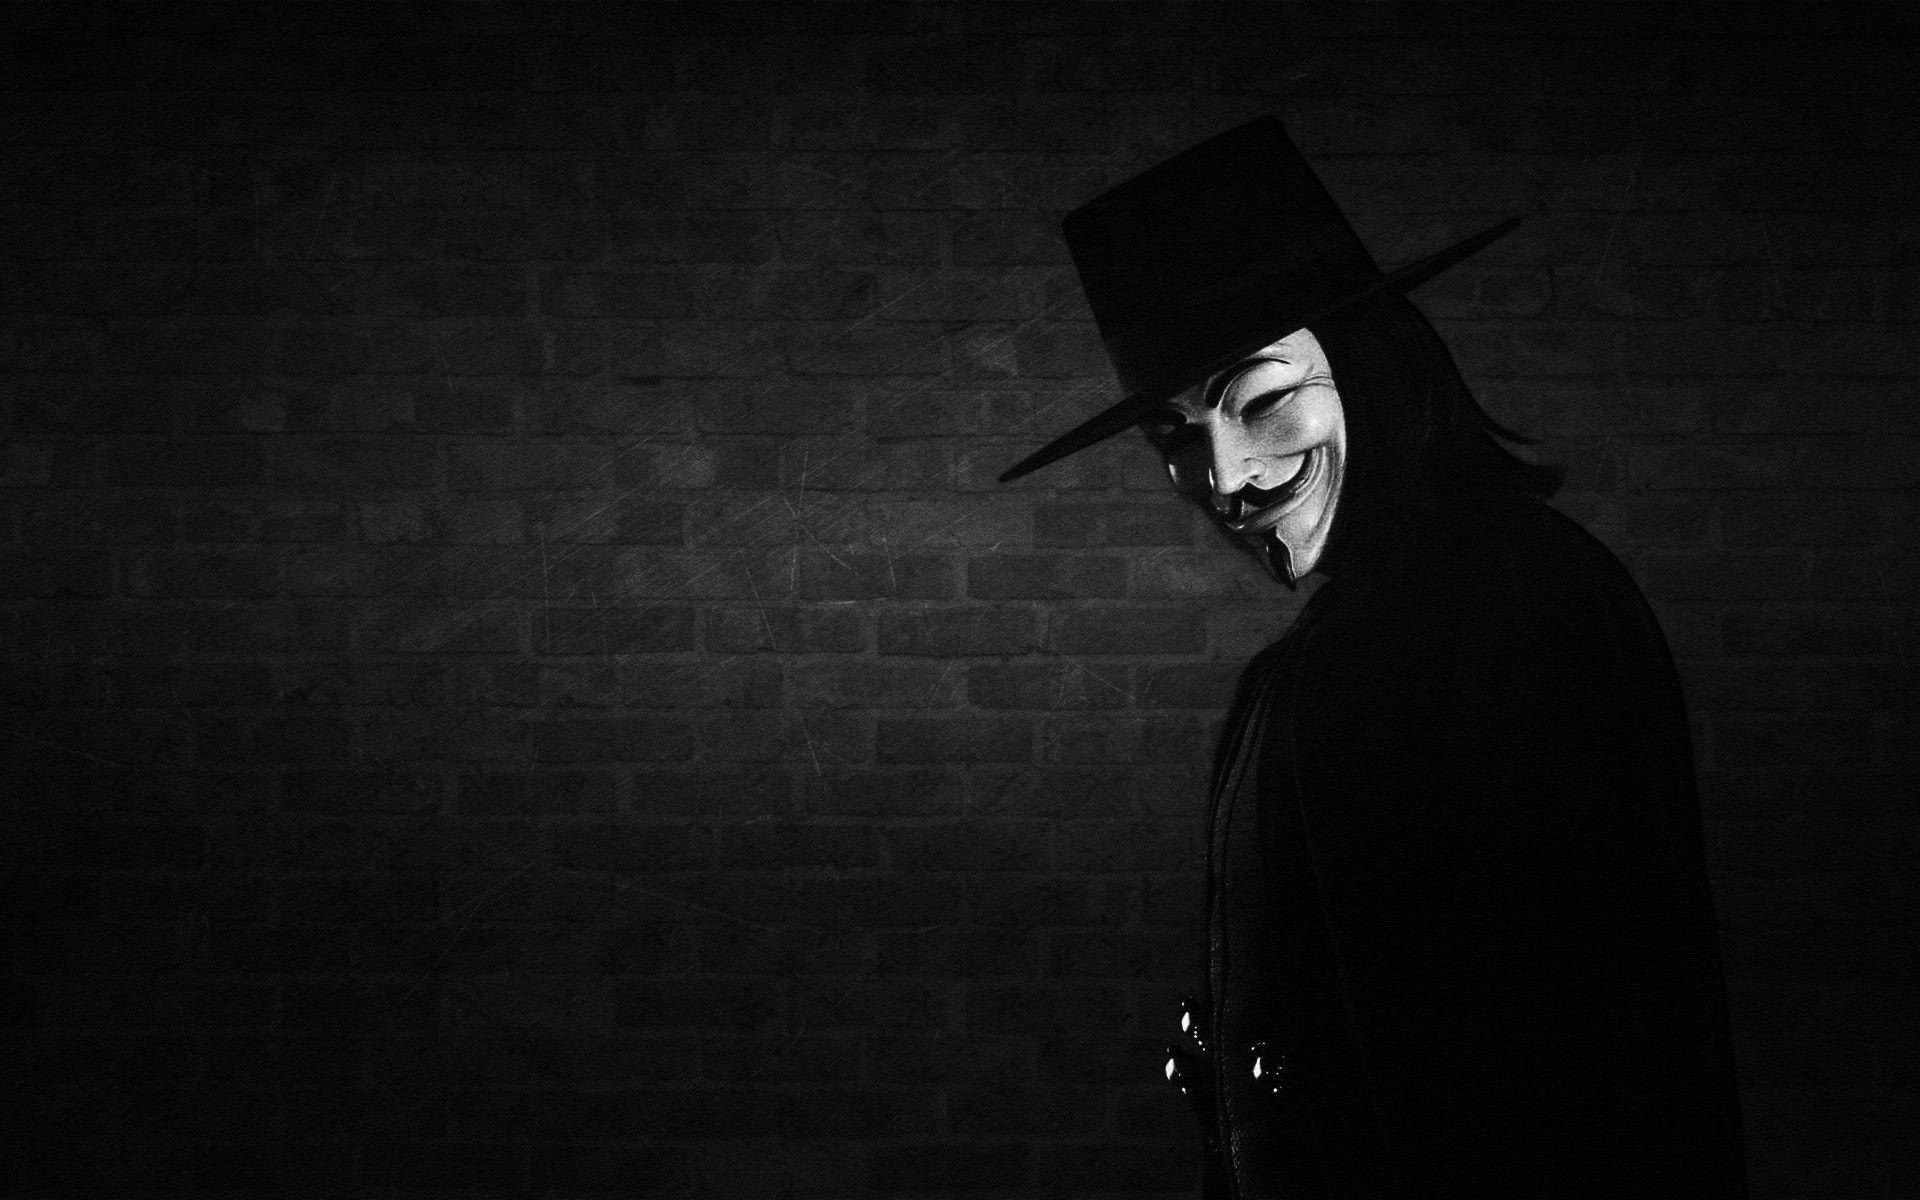 V For Vendetta Mask HD Wallpaper | 4hotos